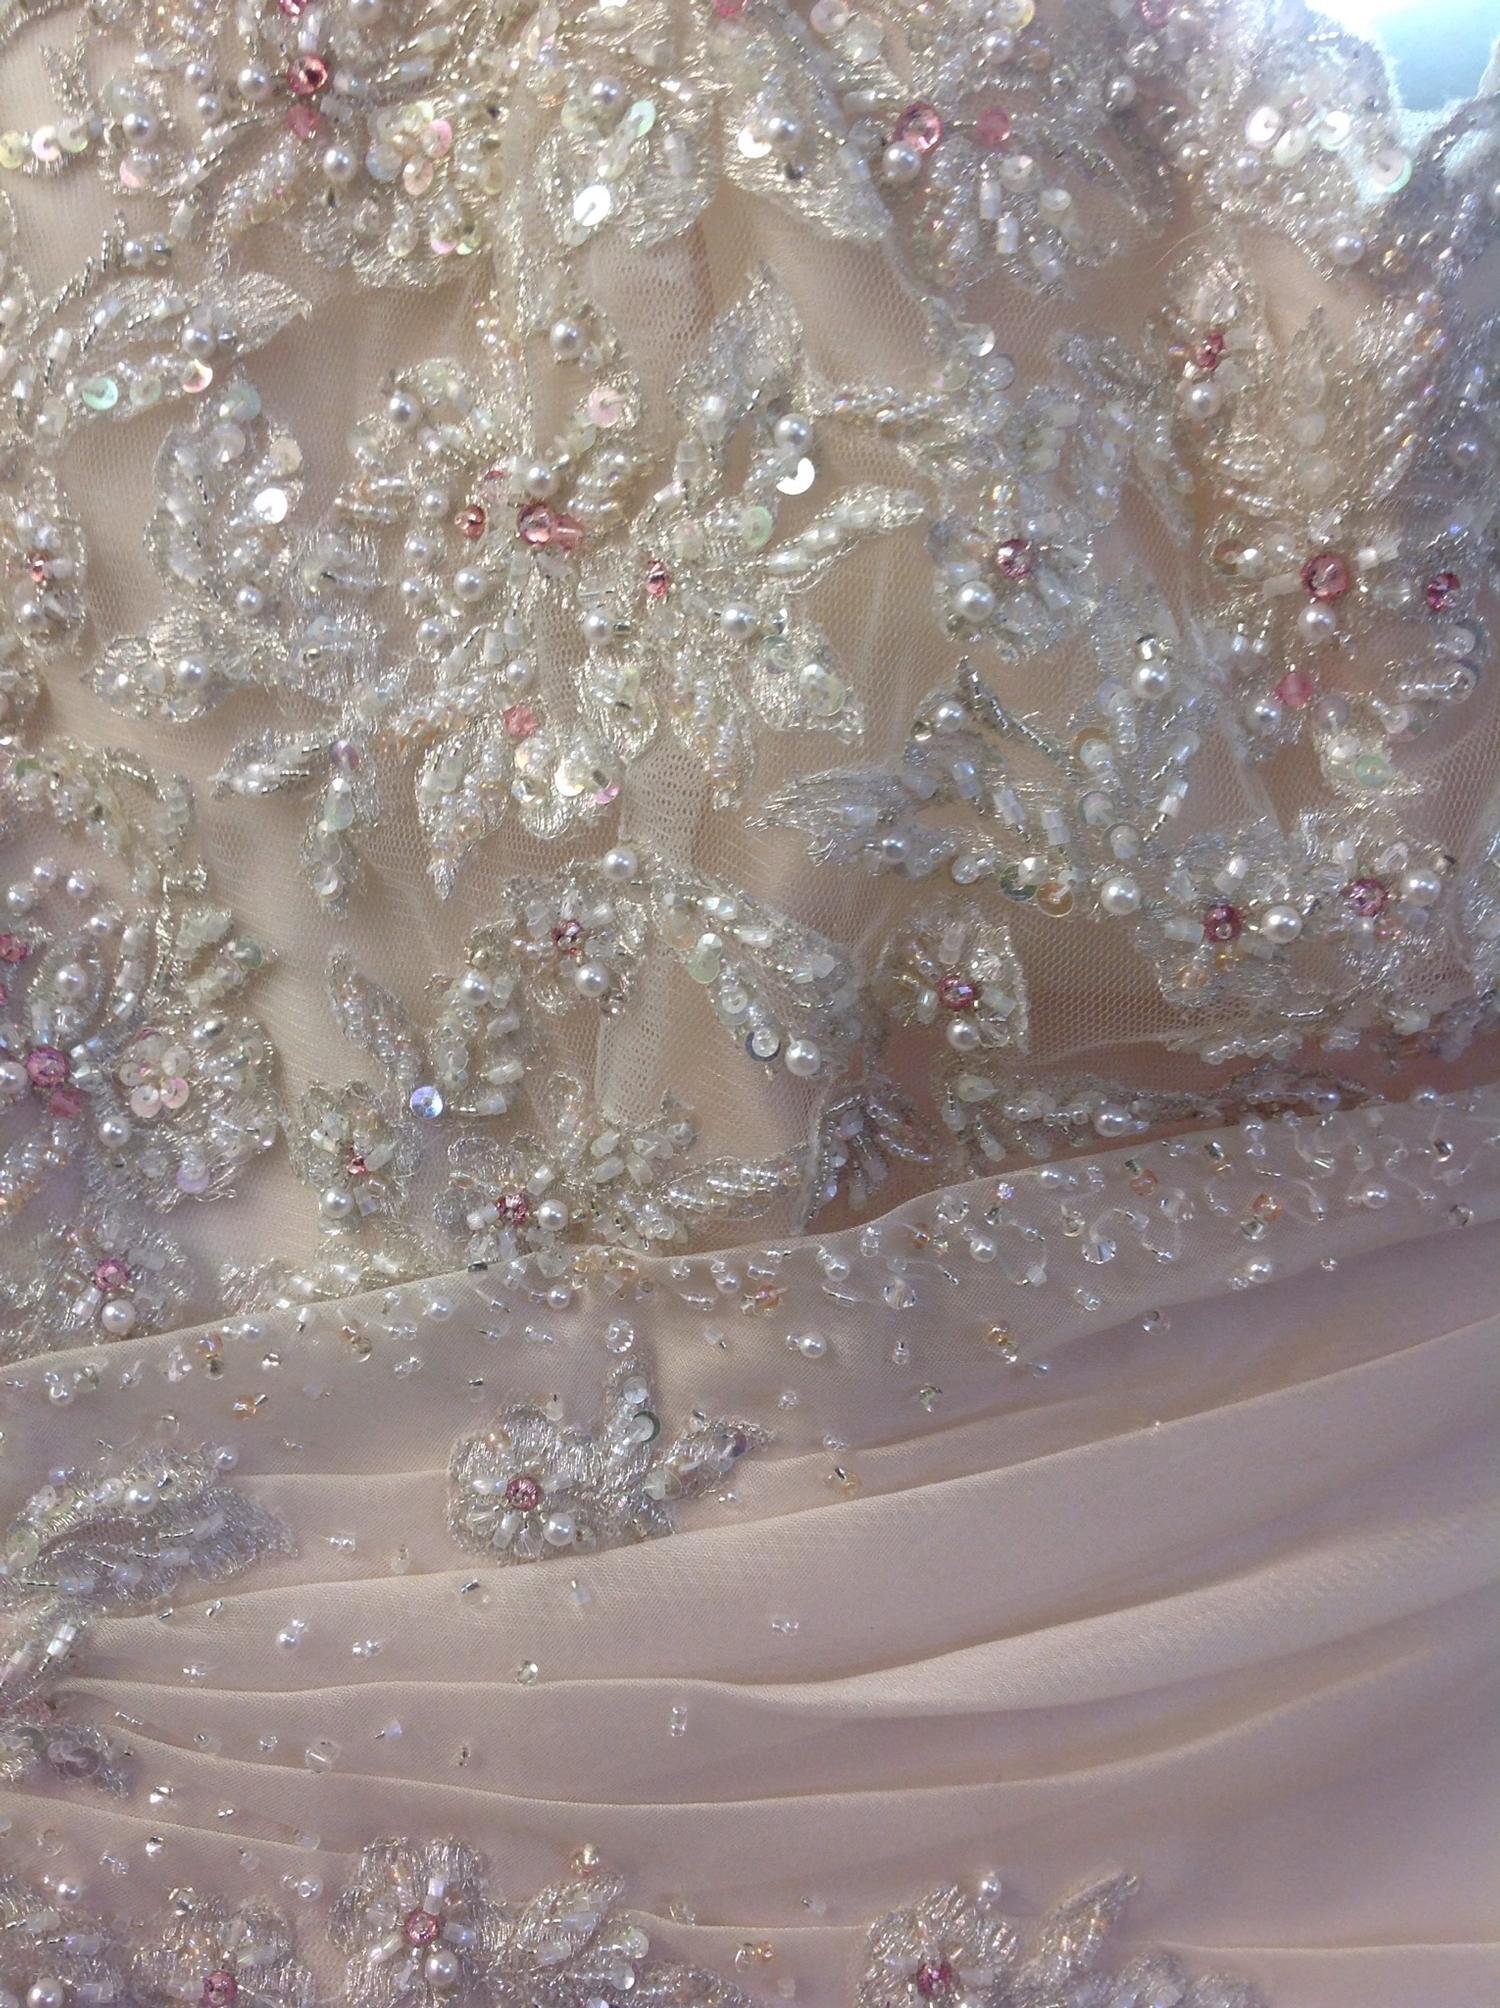 Lot 319 - (2) 4 x Wedding gown samples, total rrp £3621, Ronald Joyce x2, Maggie Sottero x1, Lilly Des x1